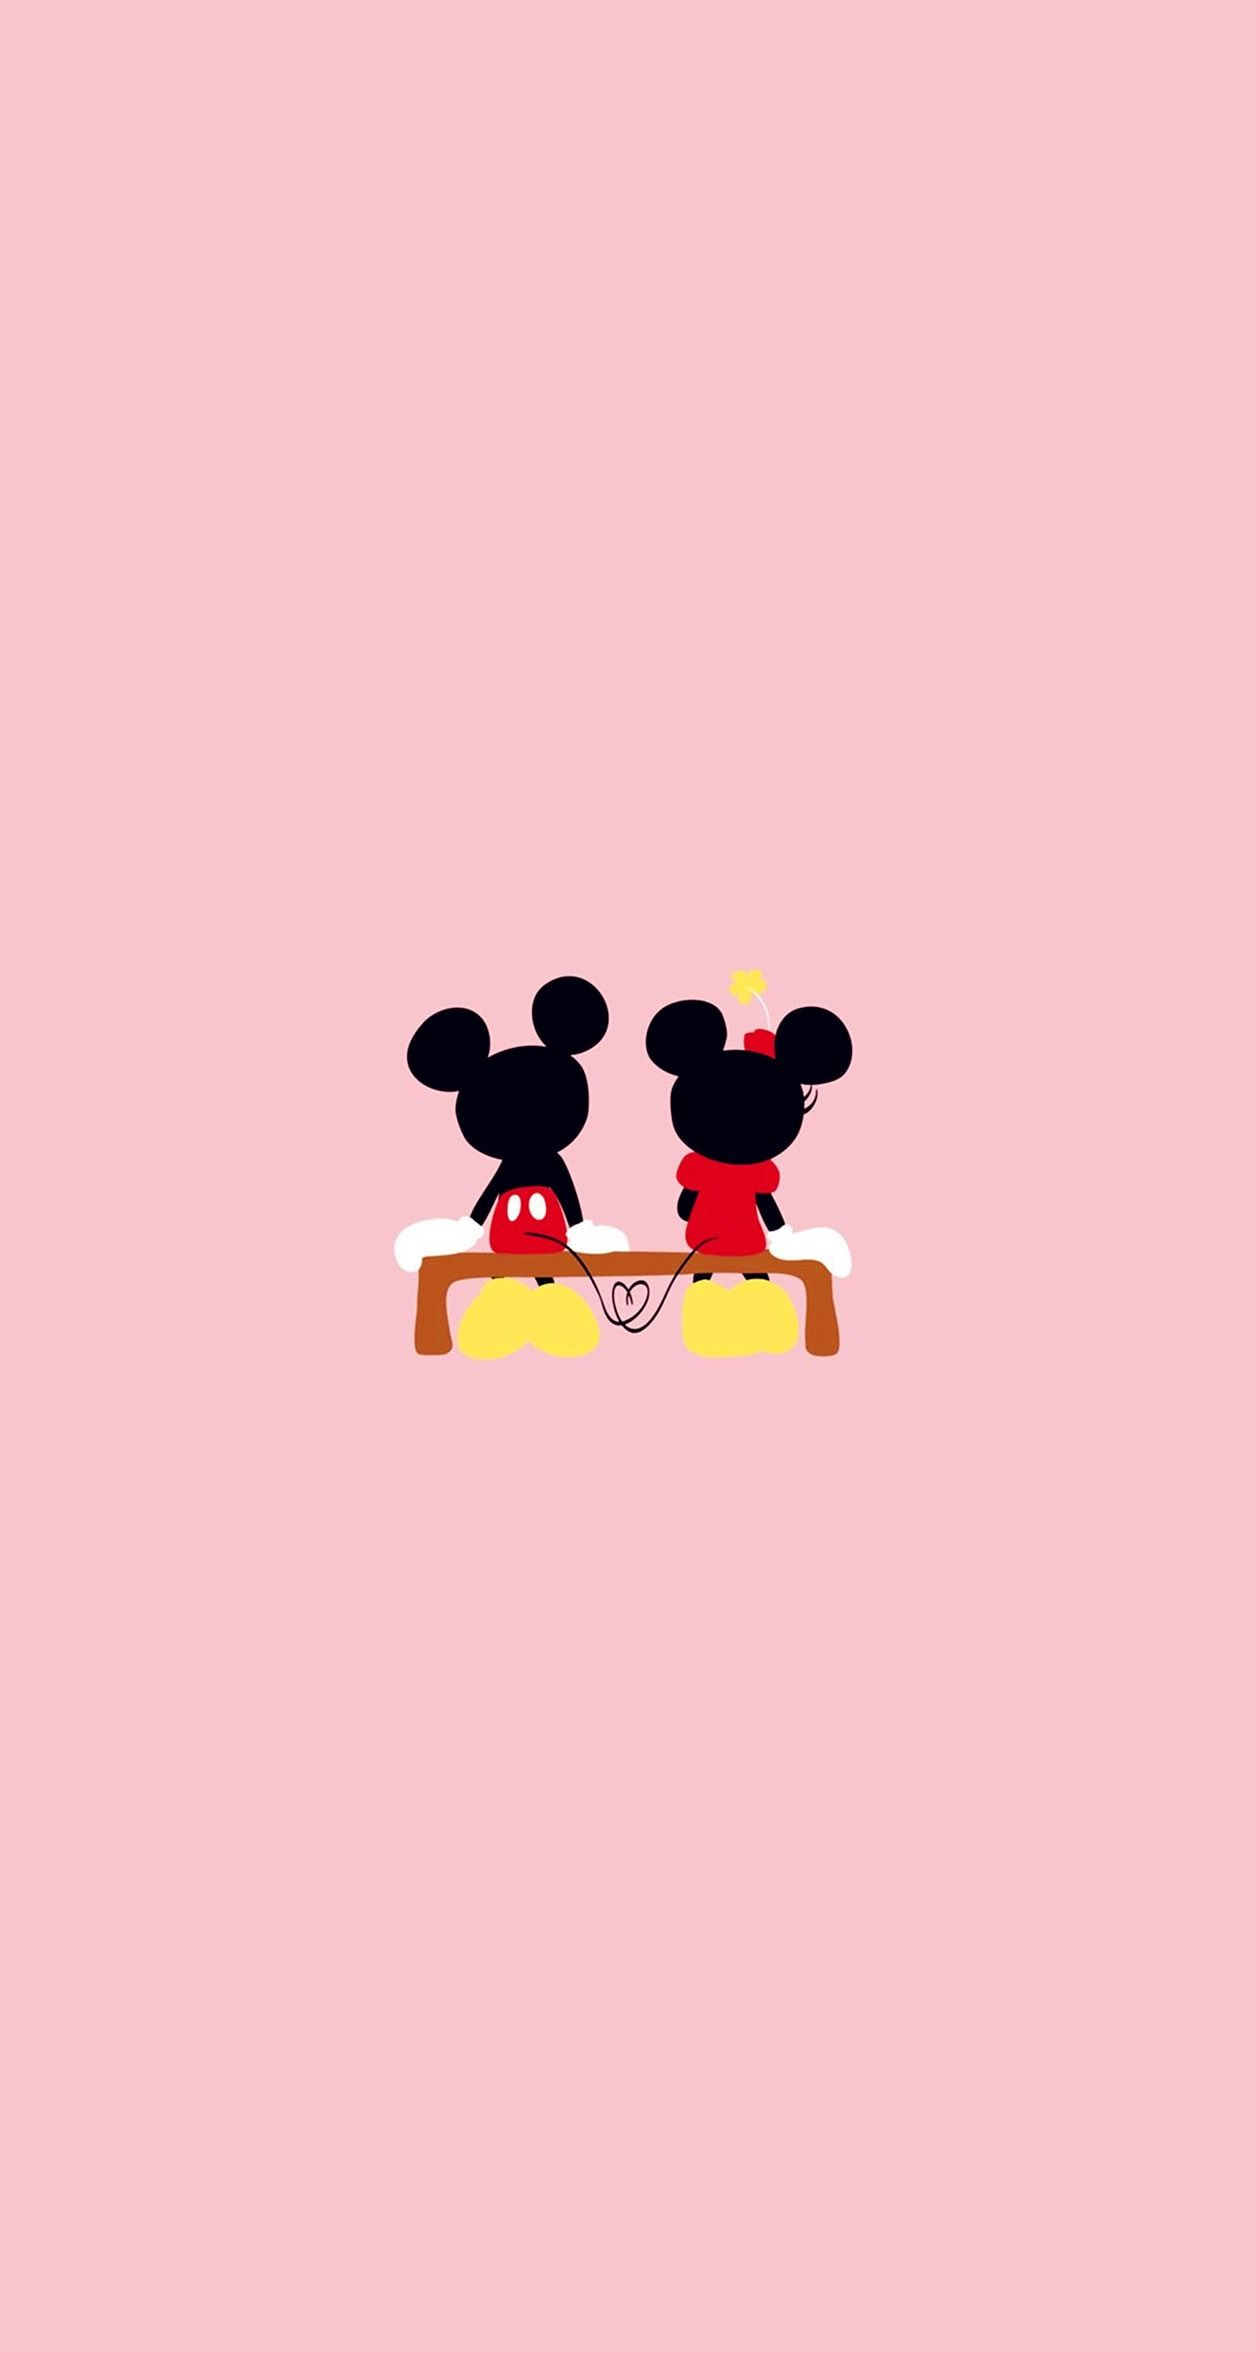 Wallpaper iphone mickey mouse - Wallpaper Mickey Mouse And Minnie Mouse Image On We Heart It